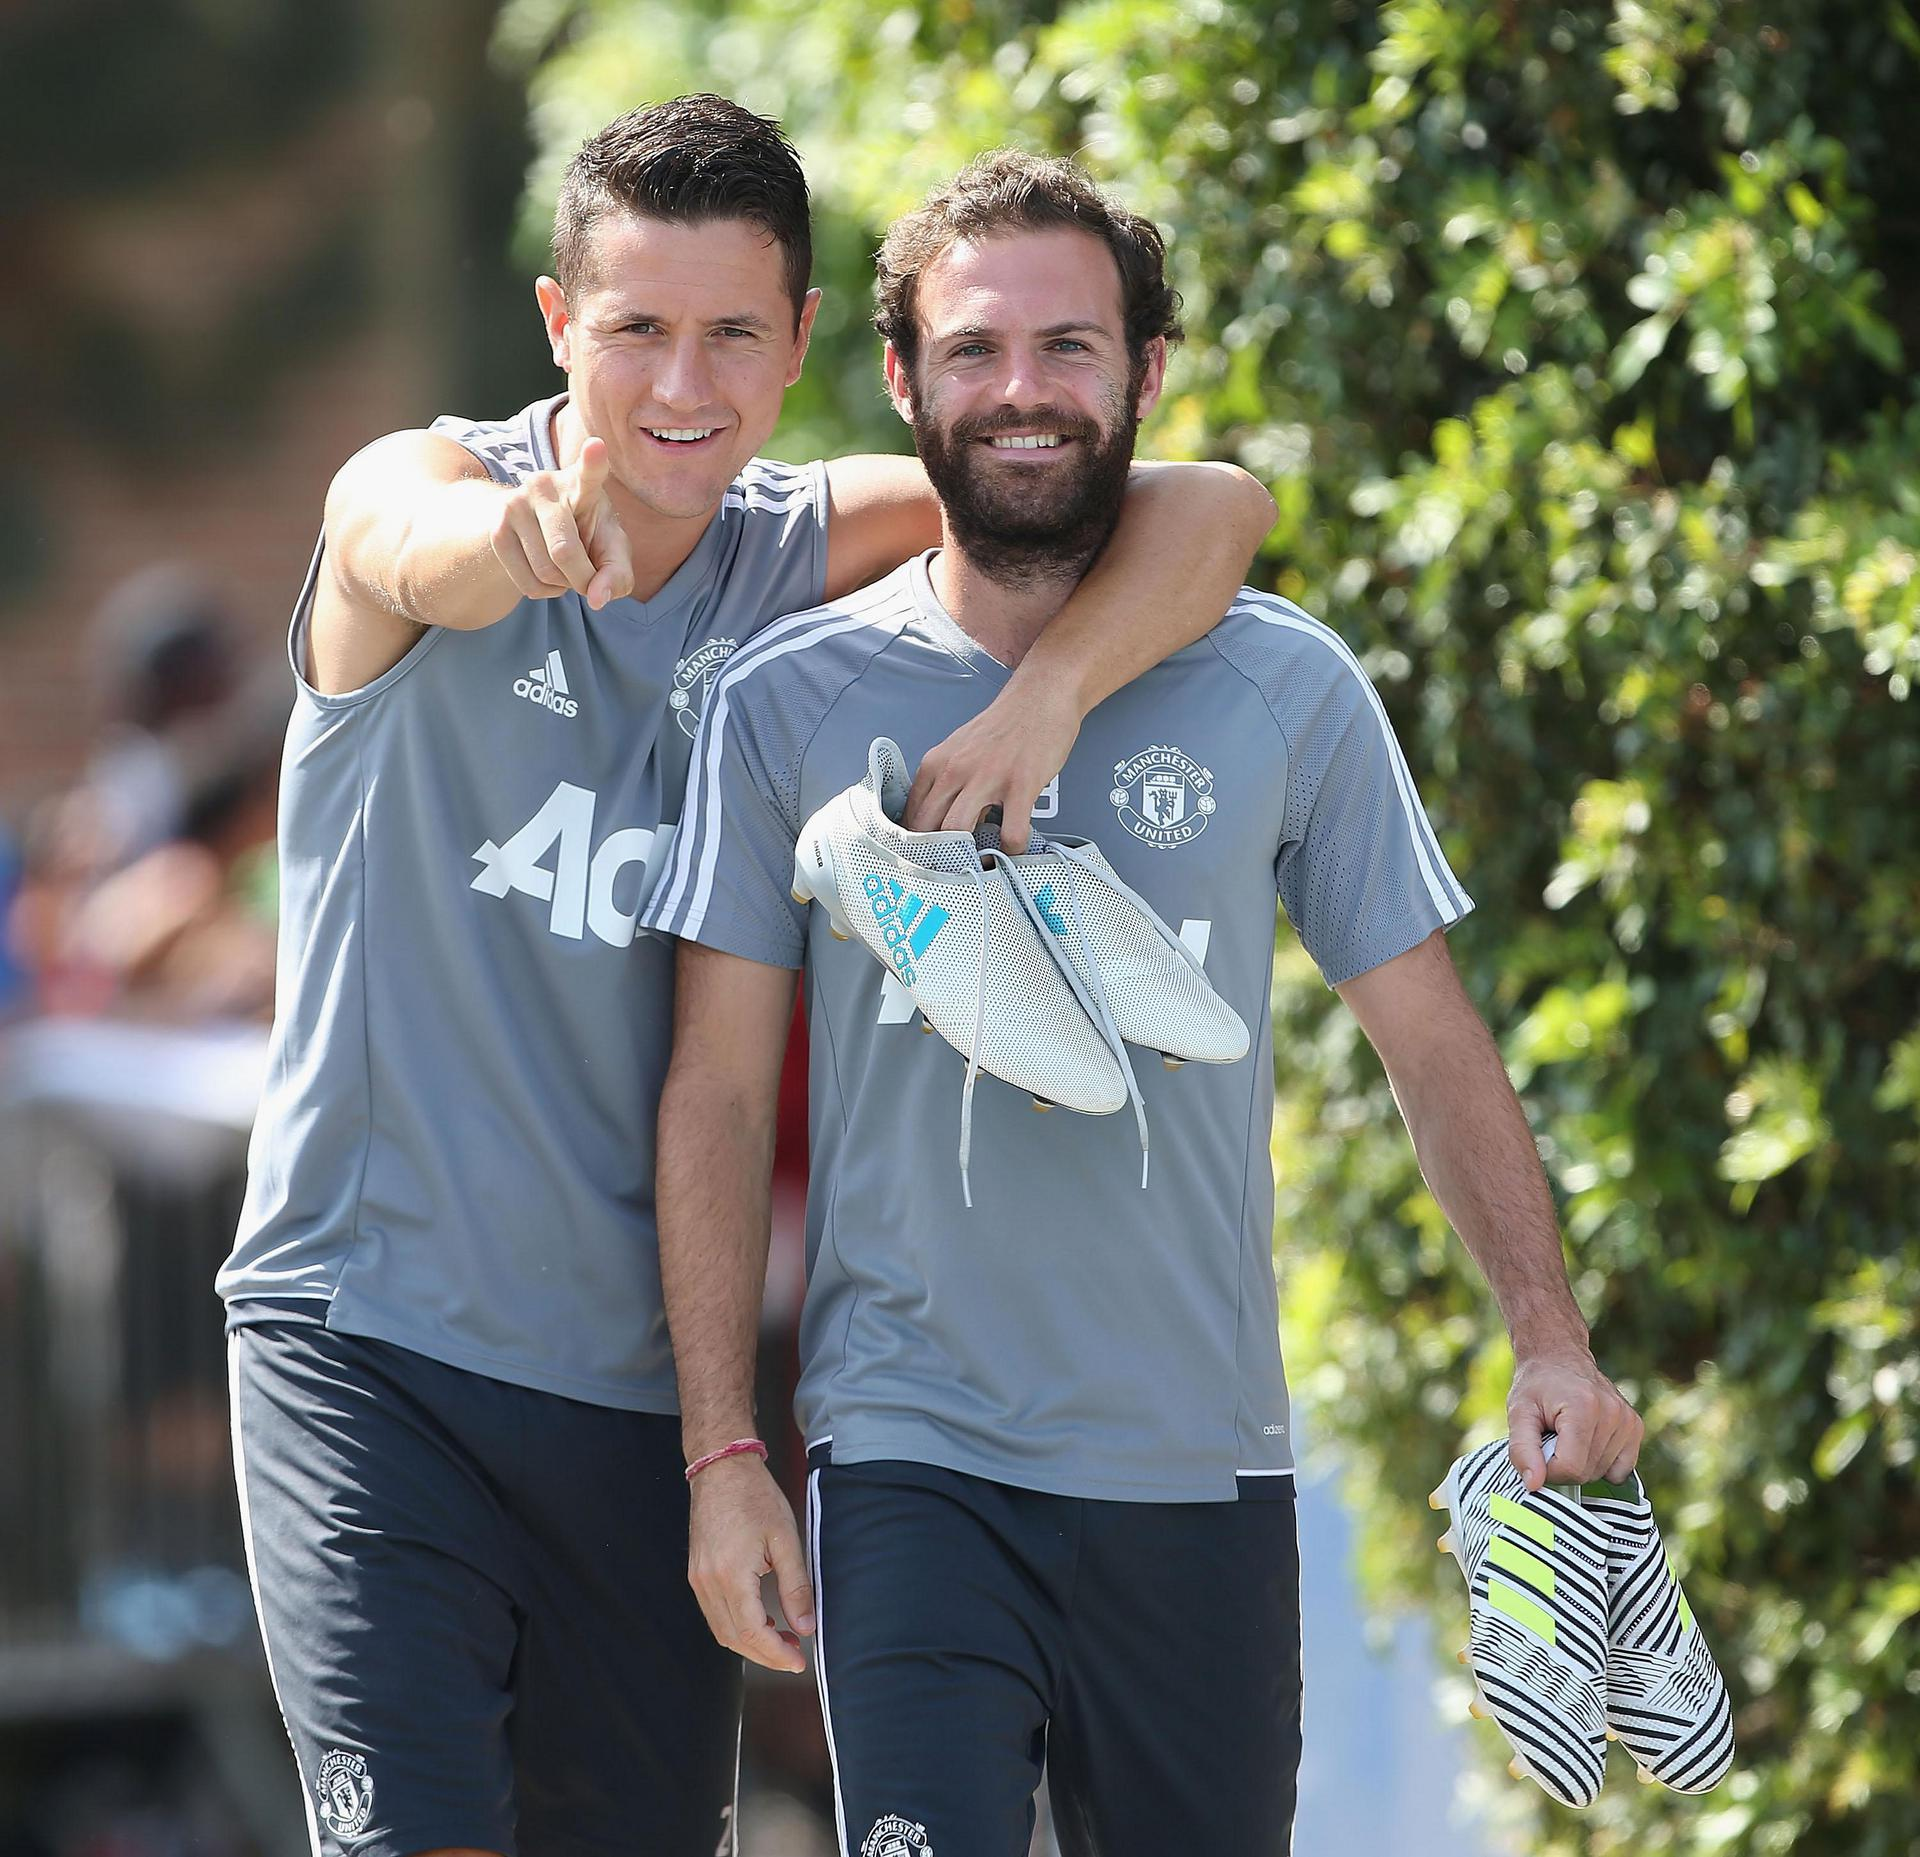 Juan Mata and Ander Herrera pose for the camera during Tour 2017